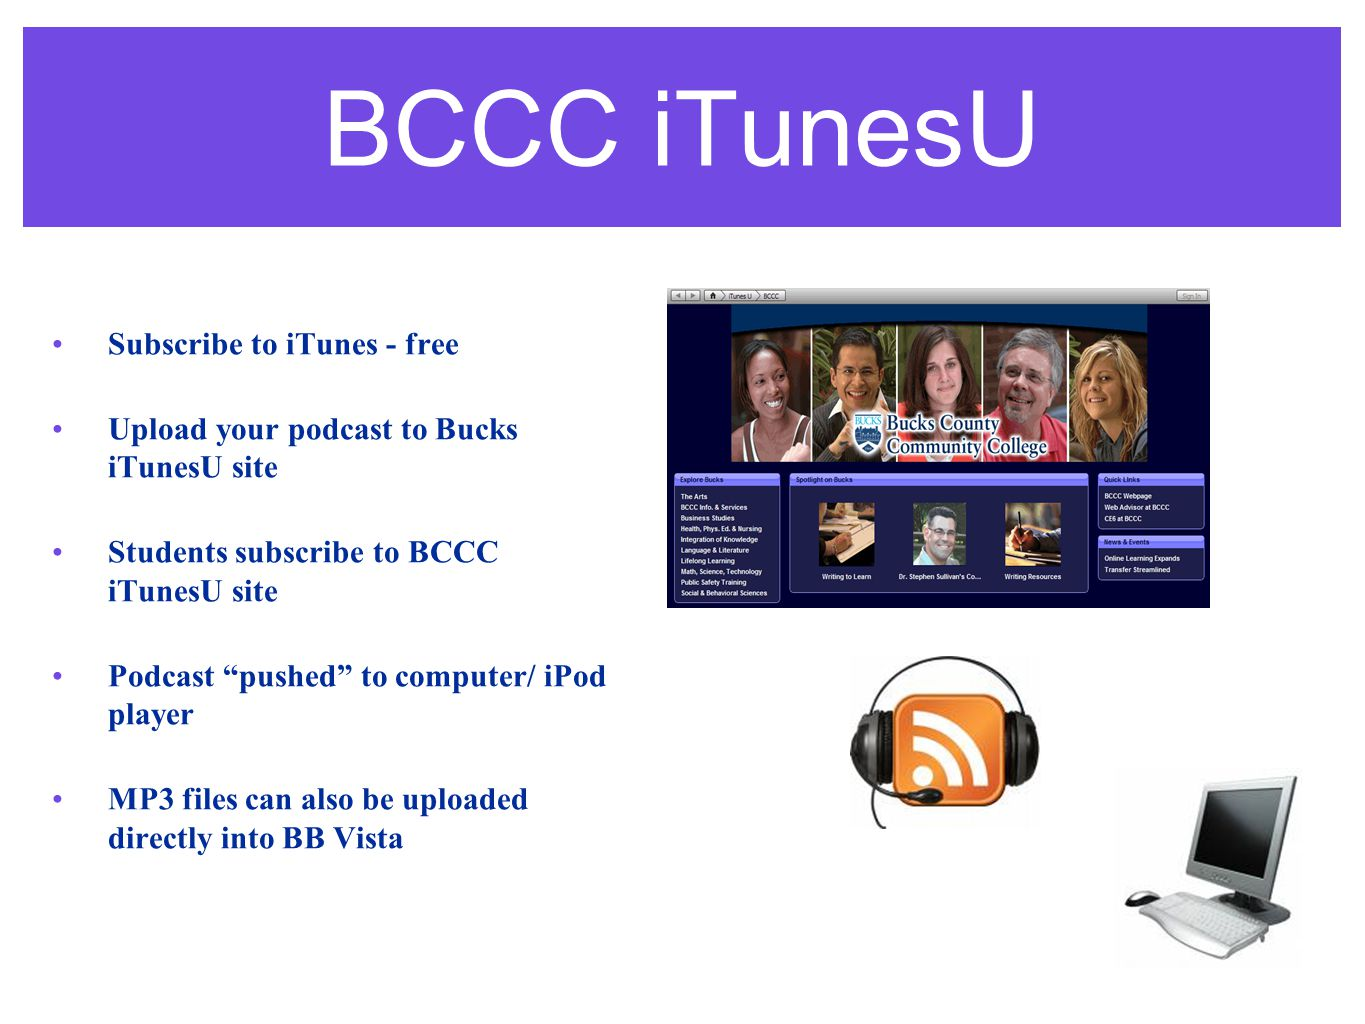 BCCC iTunesU Subscribe to iTunes - free Upload your podcast to Bucks iTunesU site Students subscribe to BCCC iTunesU site Podcast pushed to computer/ iPod player MP3 files can also be uploaded directly into BB Vista